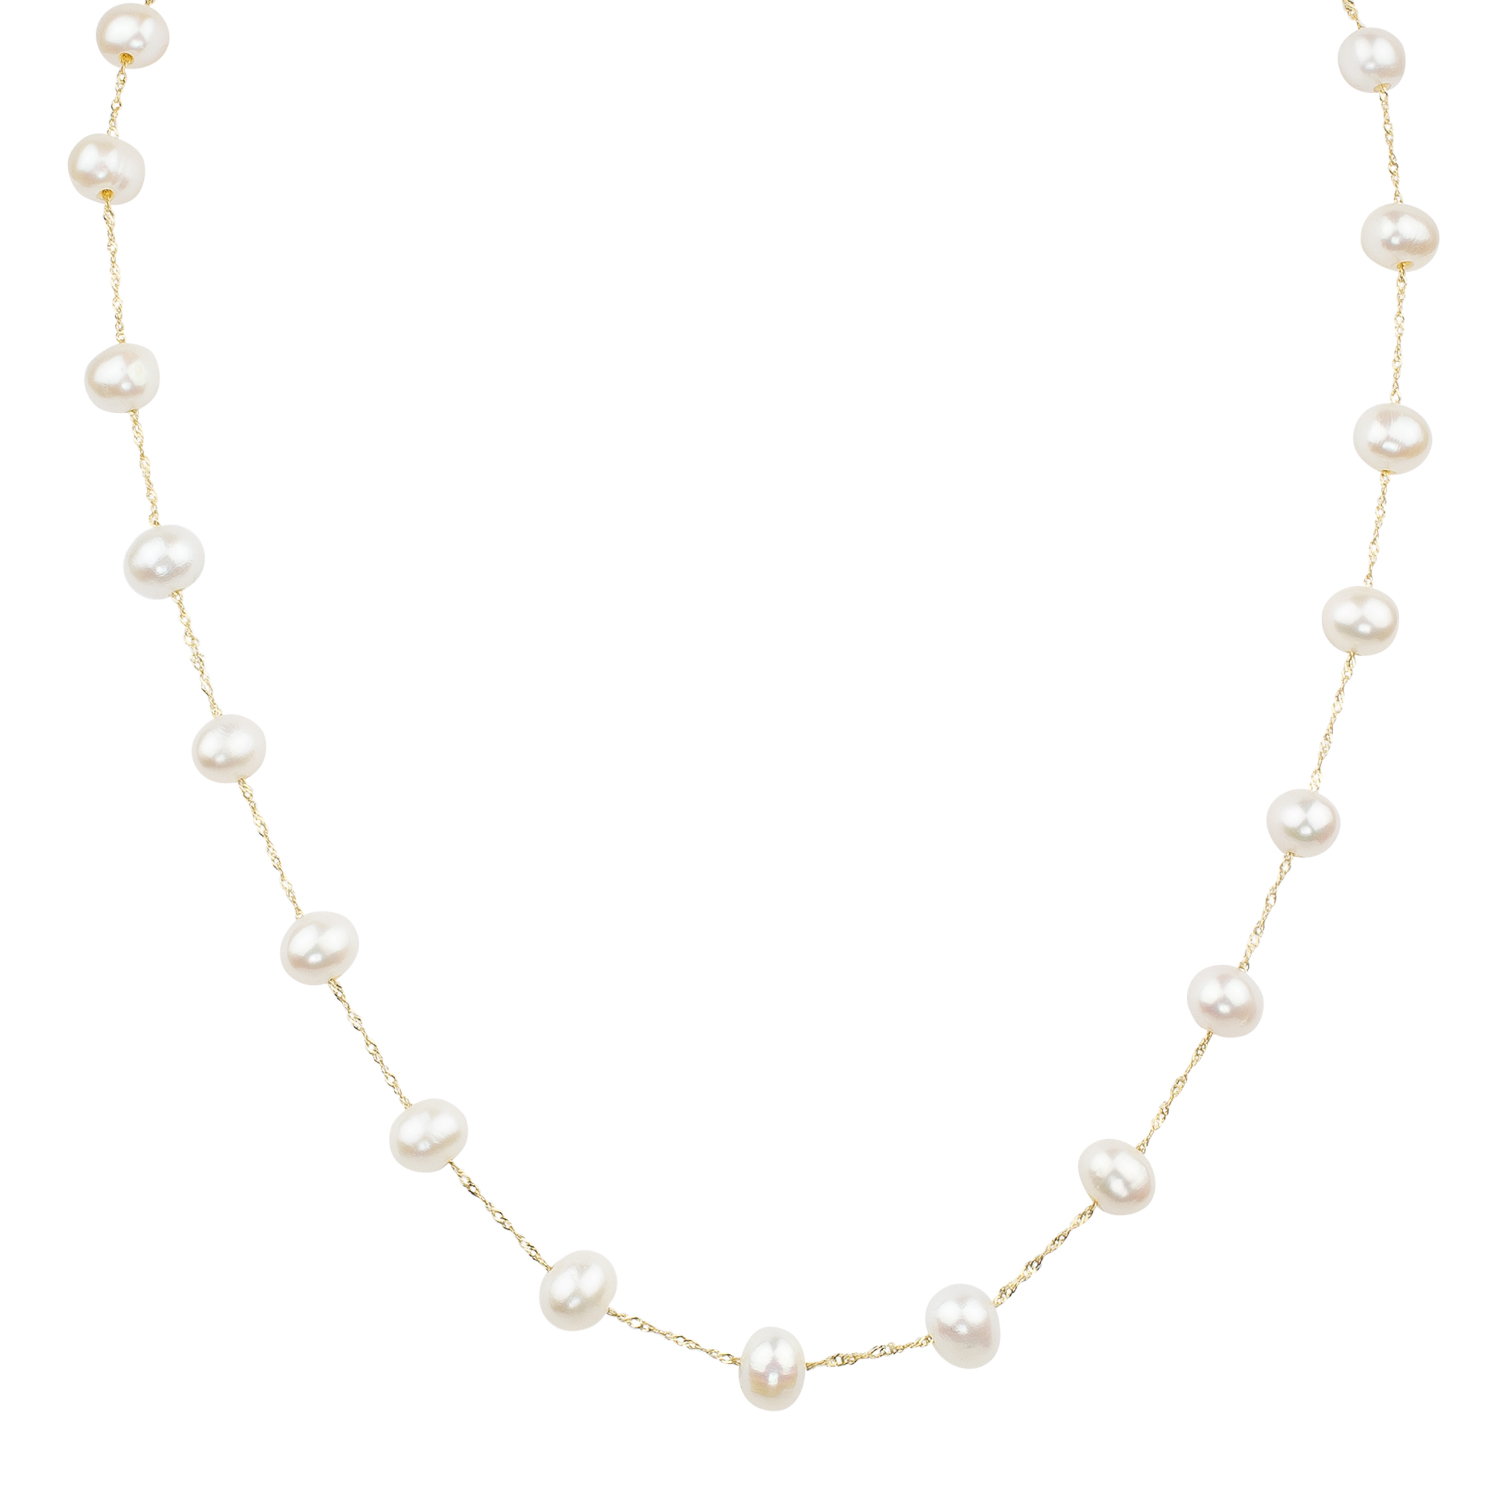 Lali Jewelry freshwater pearl necklace | JCK On Your Market